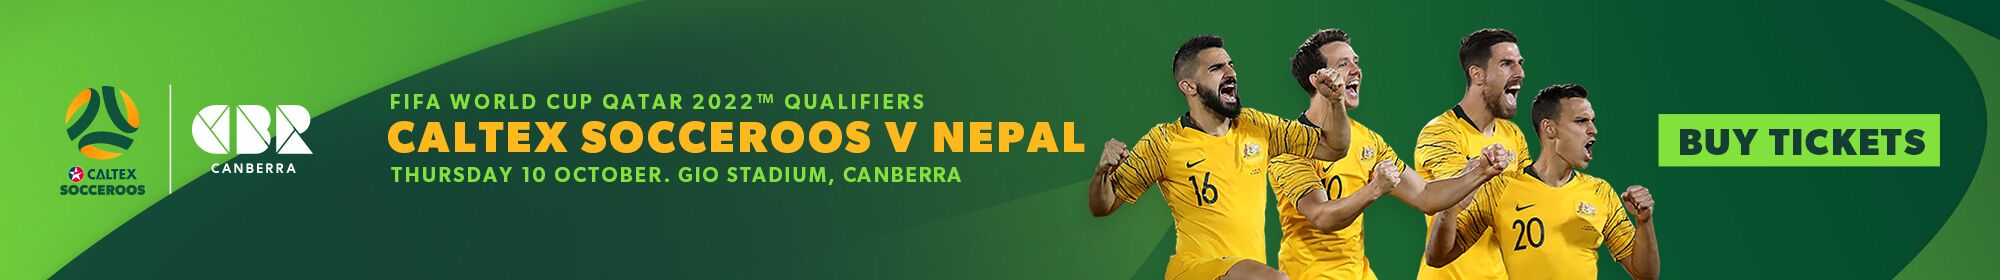 SOCCEROOS BUY NEPAL TICKETS